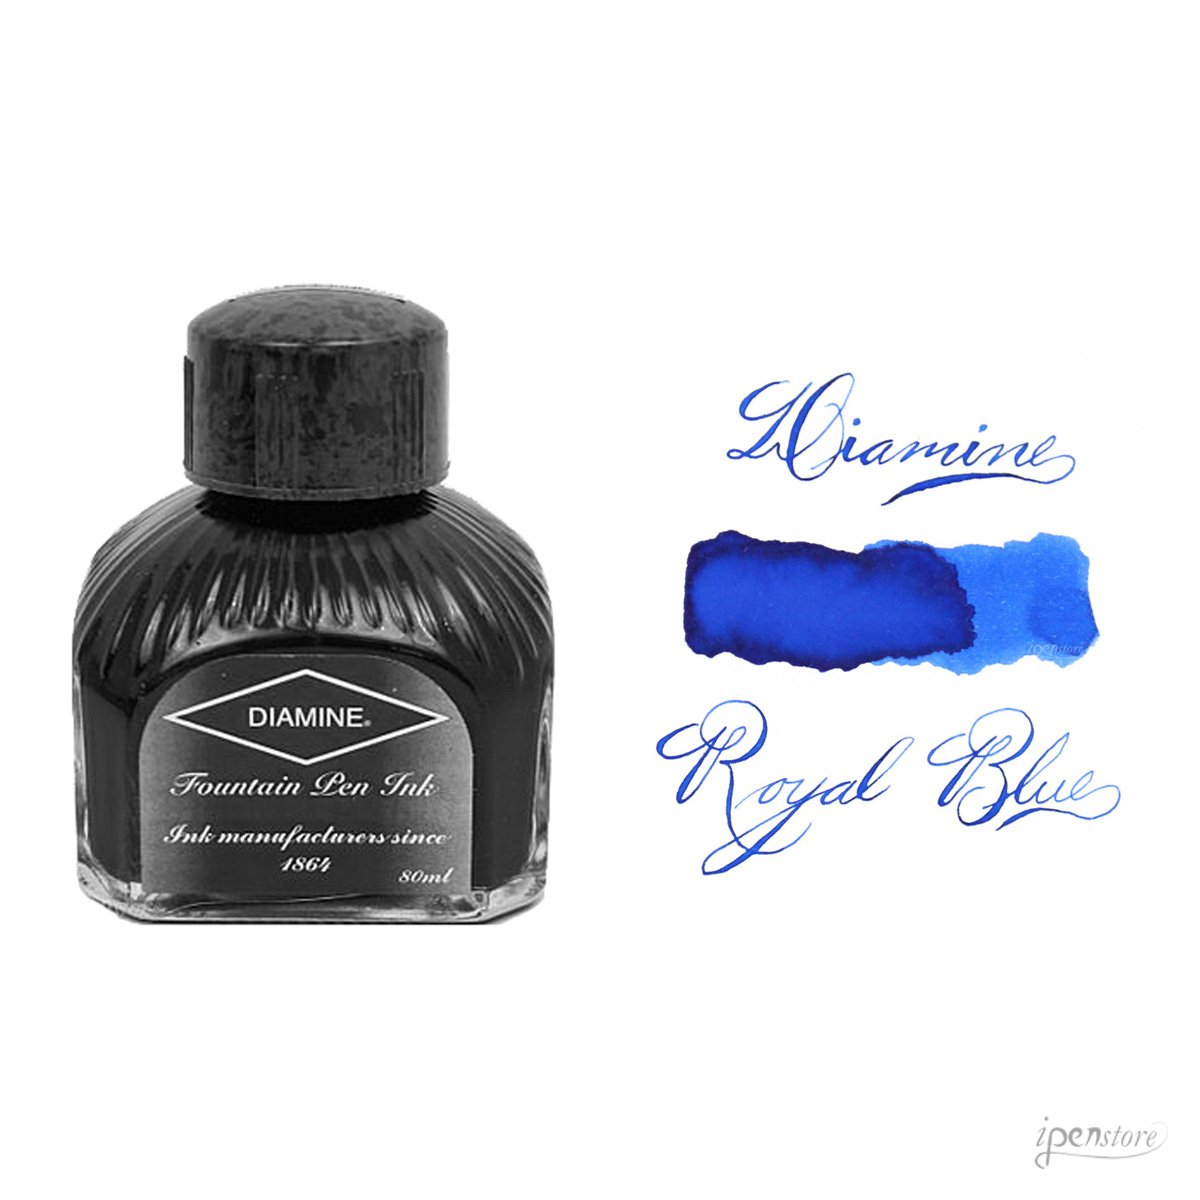 Diamine - Inchiostro per penna stilografica, Royal Blue 80ml 006